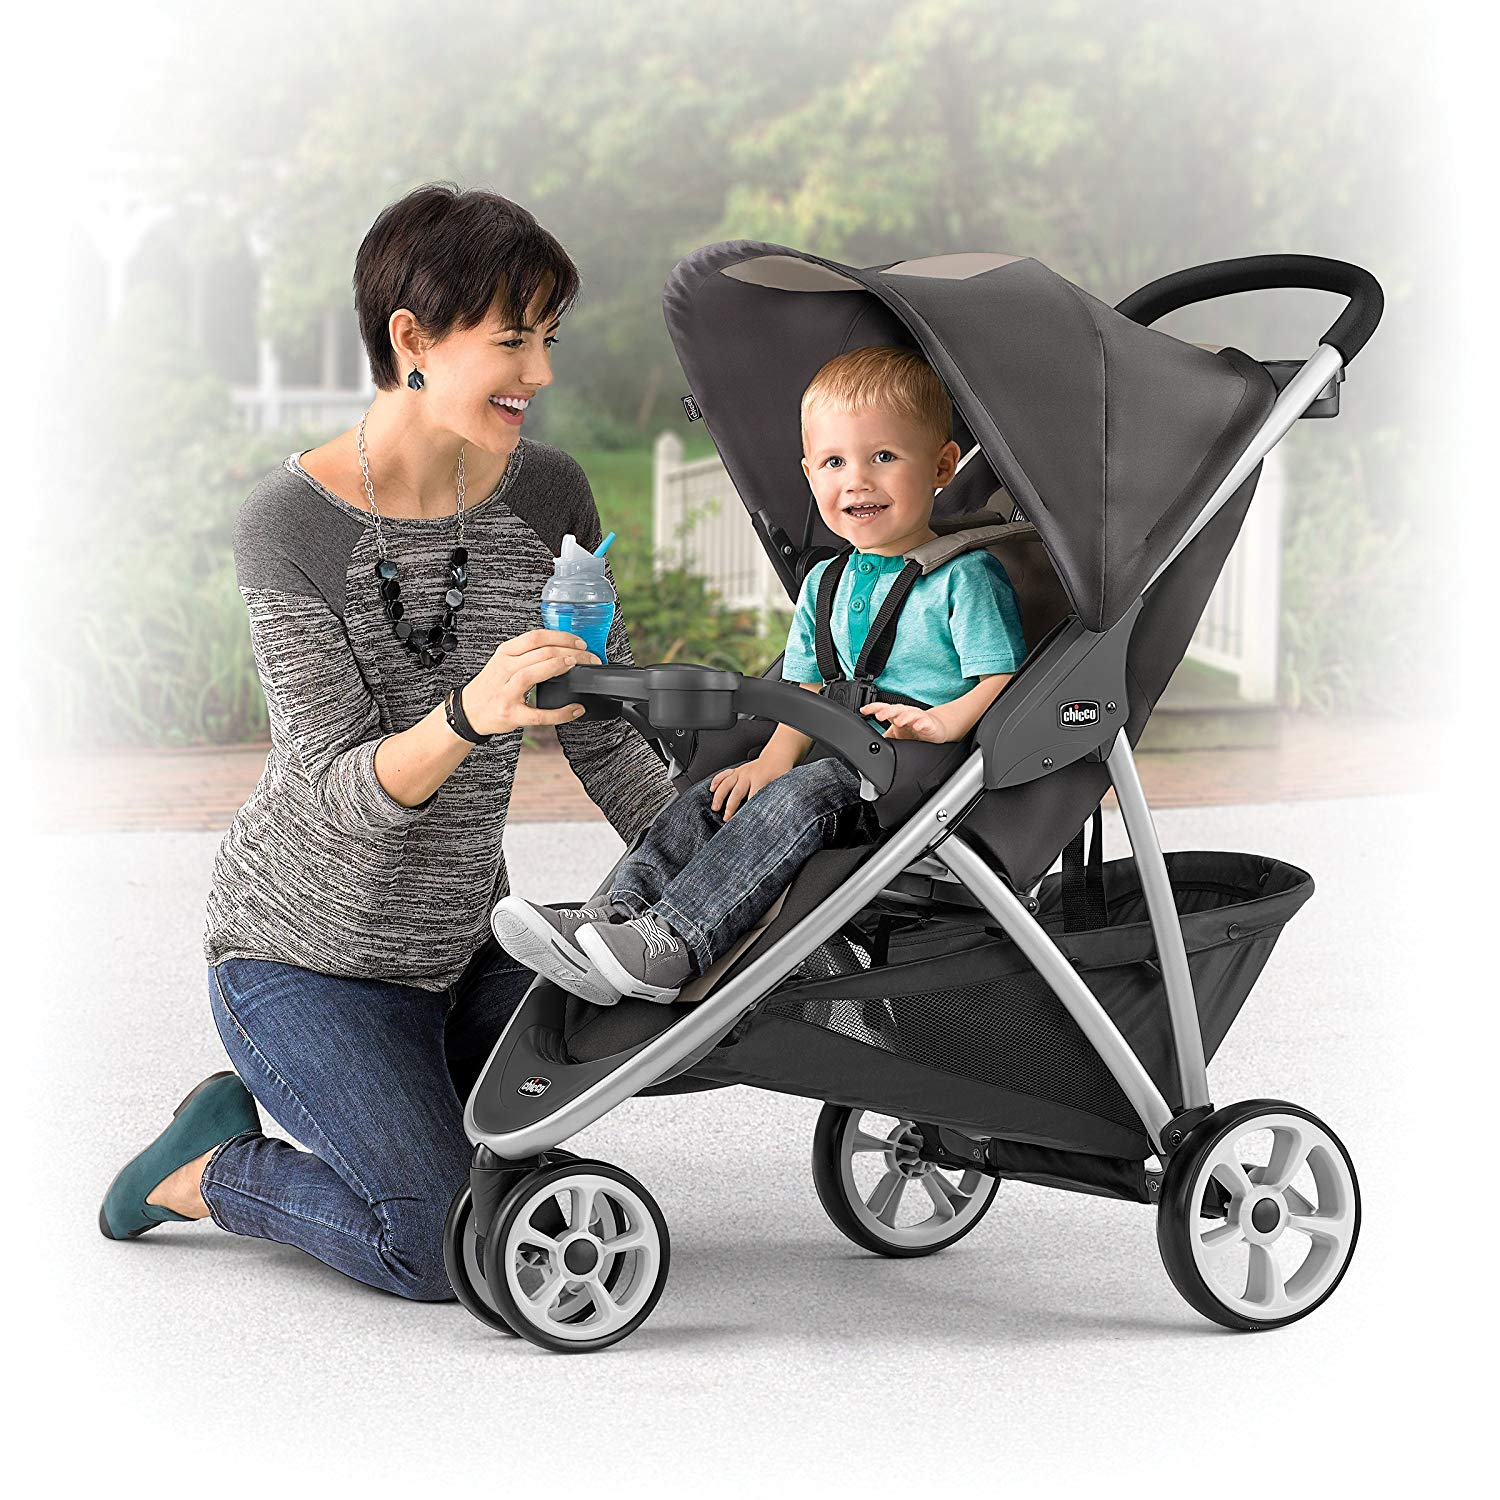 Chicco Viaro Travel System Review